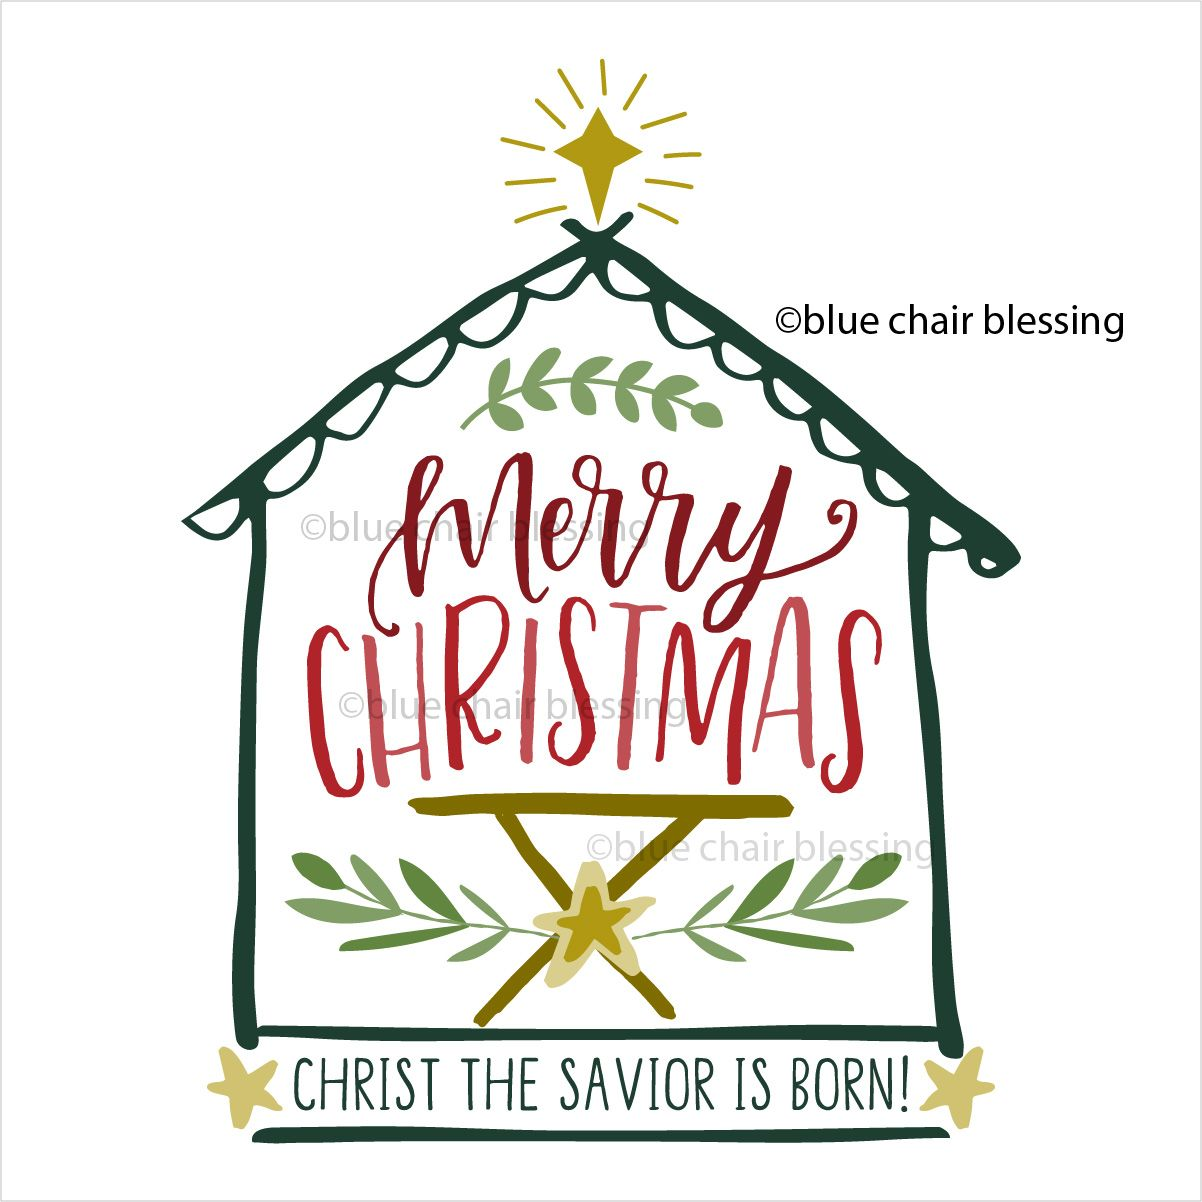 Hand lettered Christmas graphic clip art for crafting. May